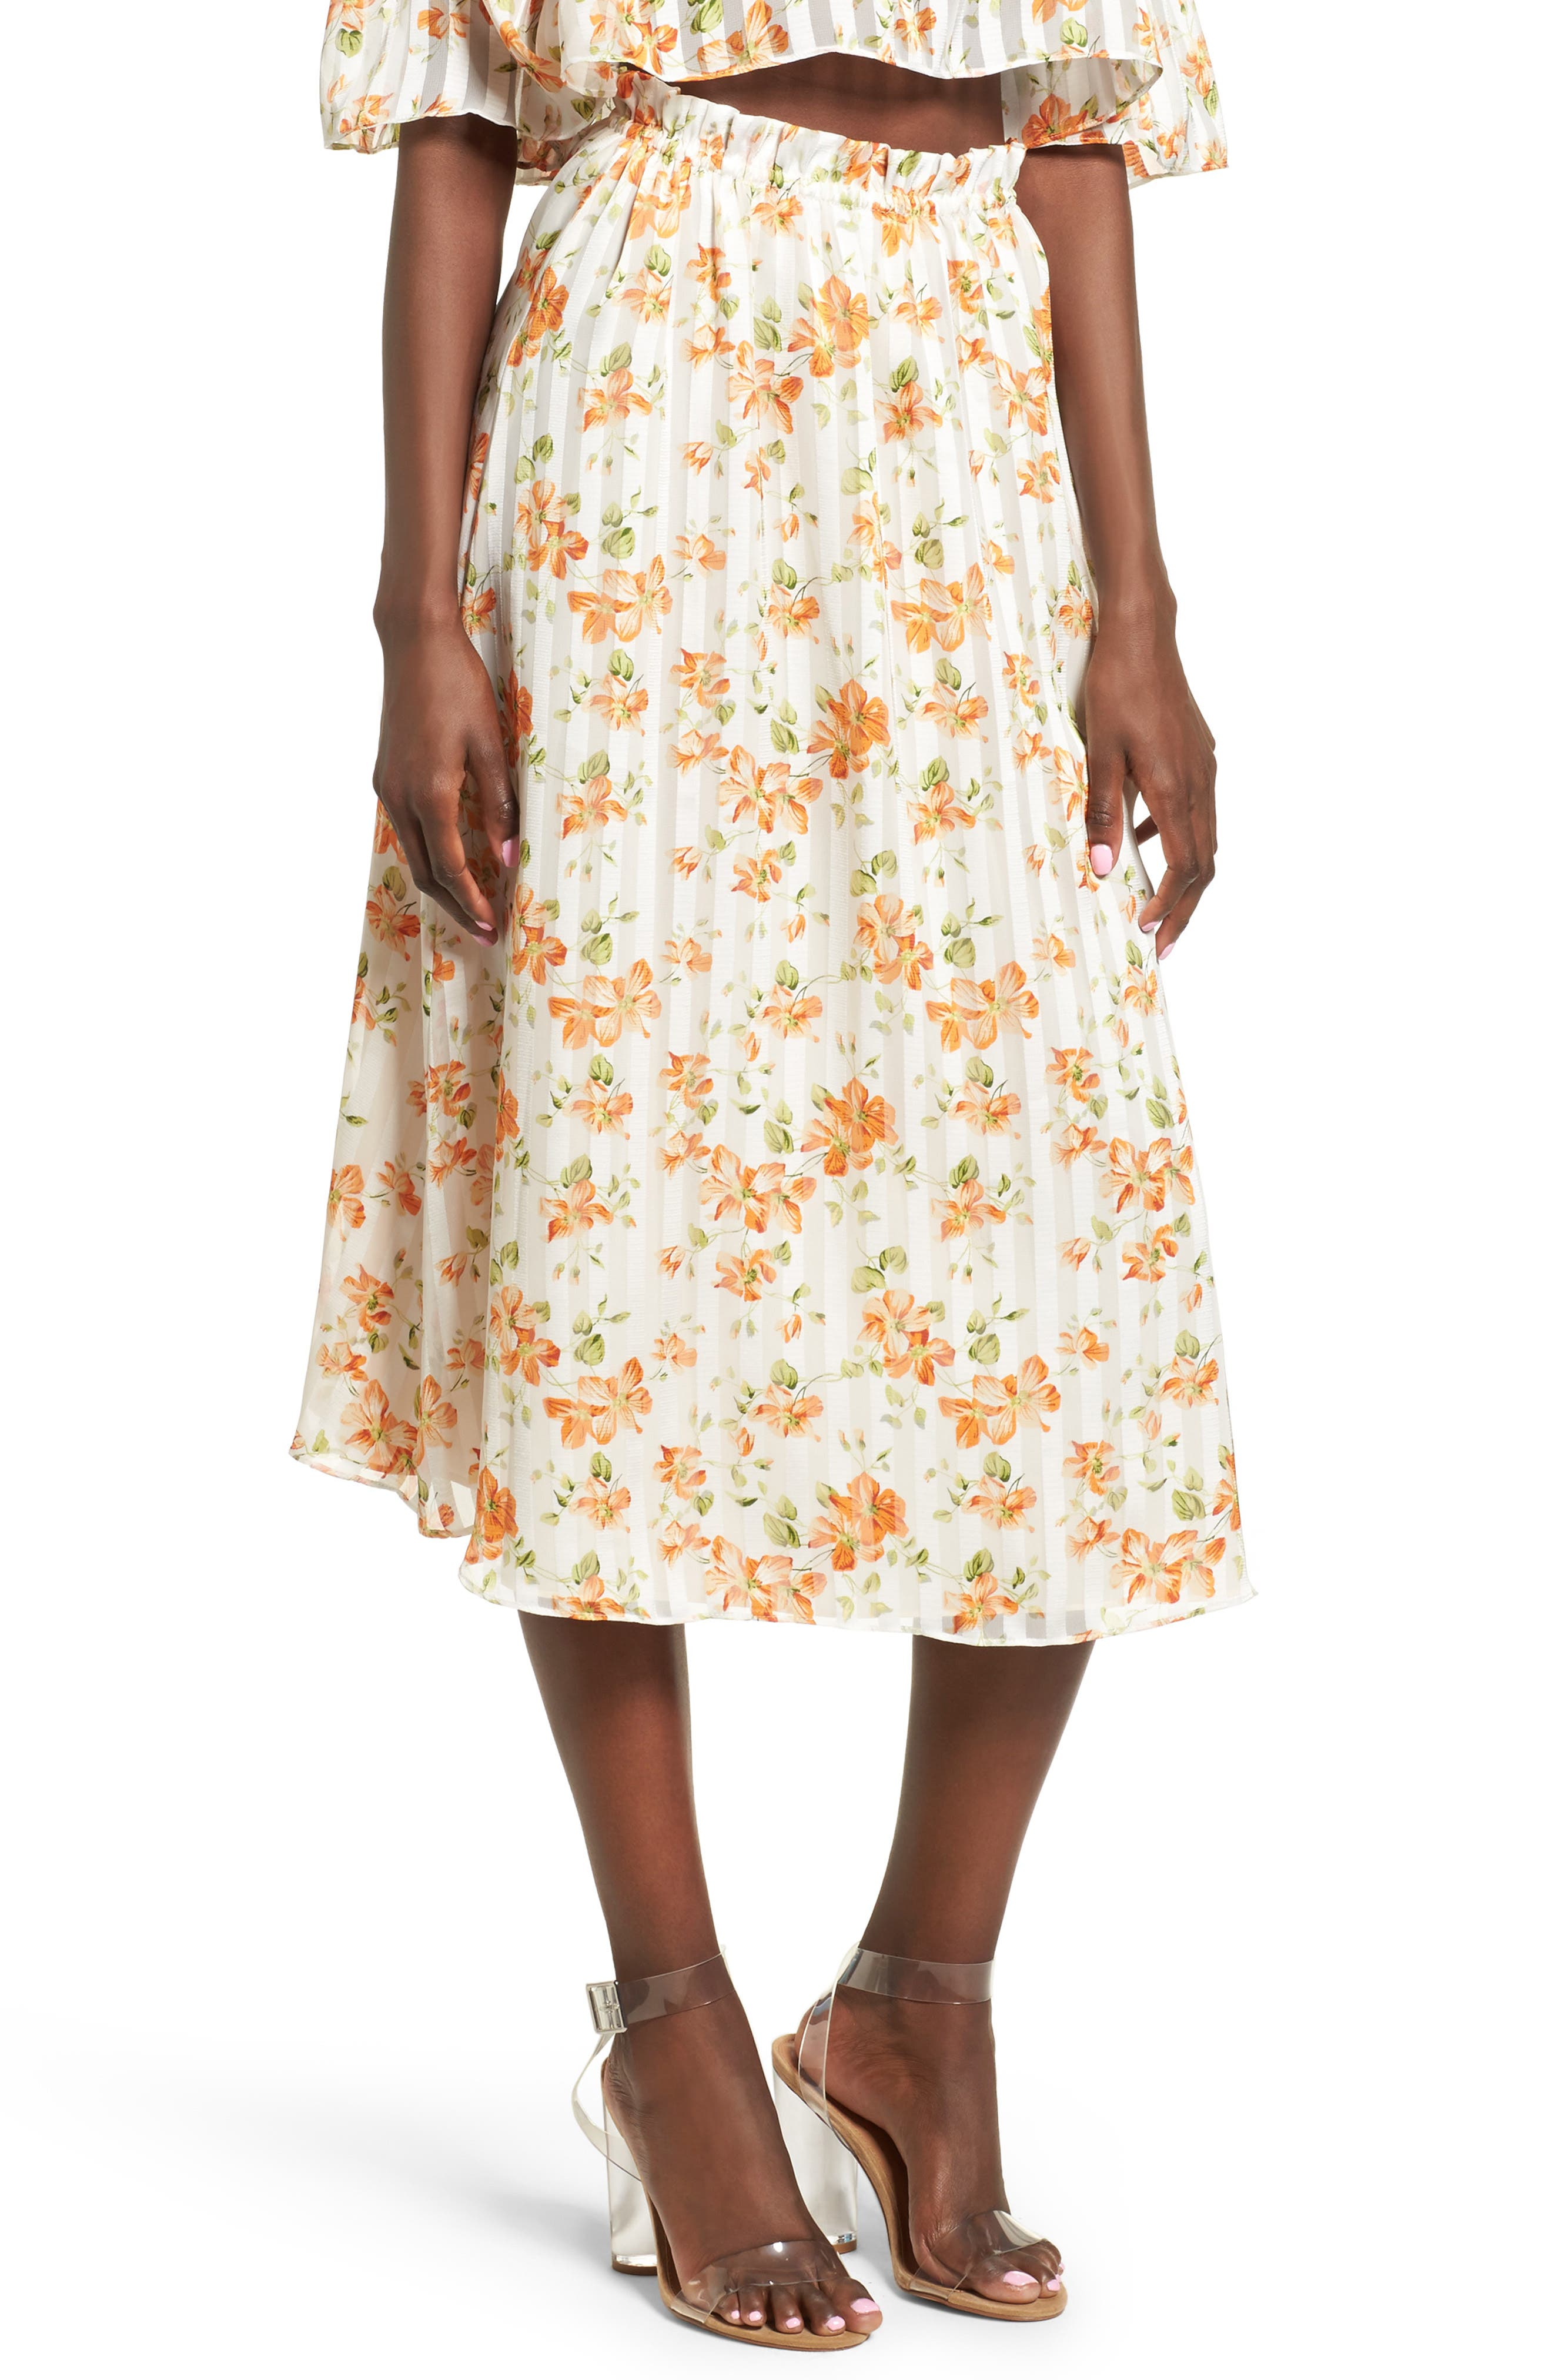 Privacy Please Whitney Floral Midi Skirt